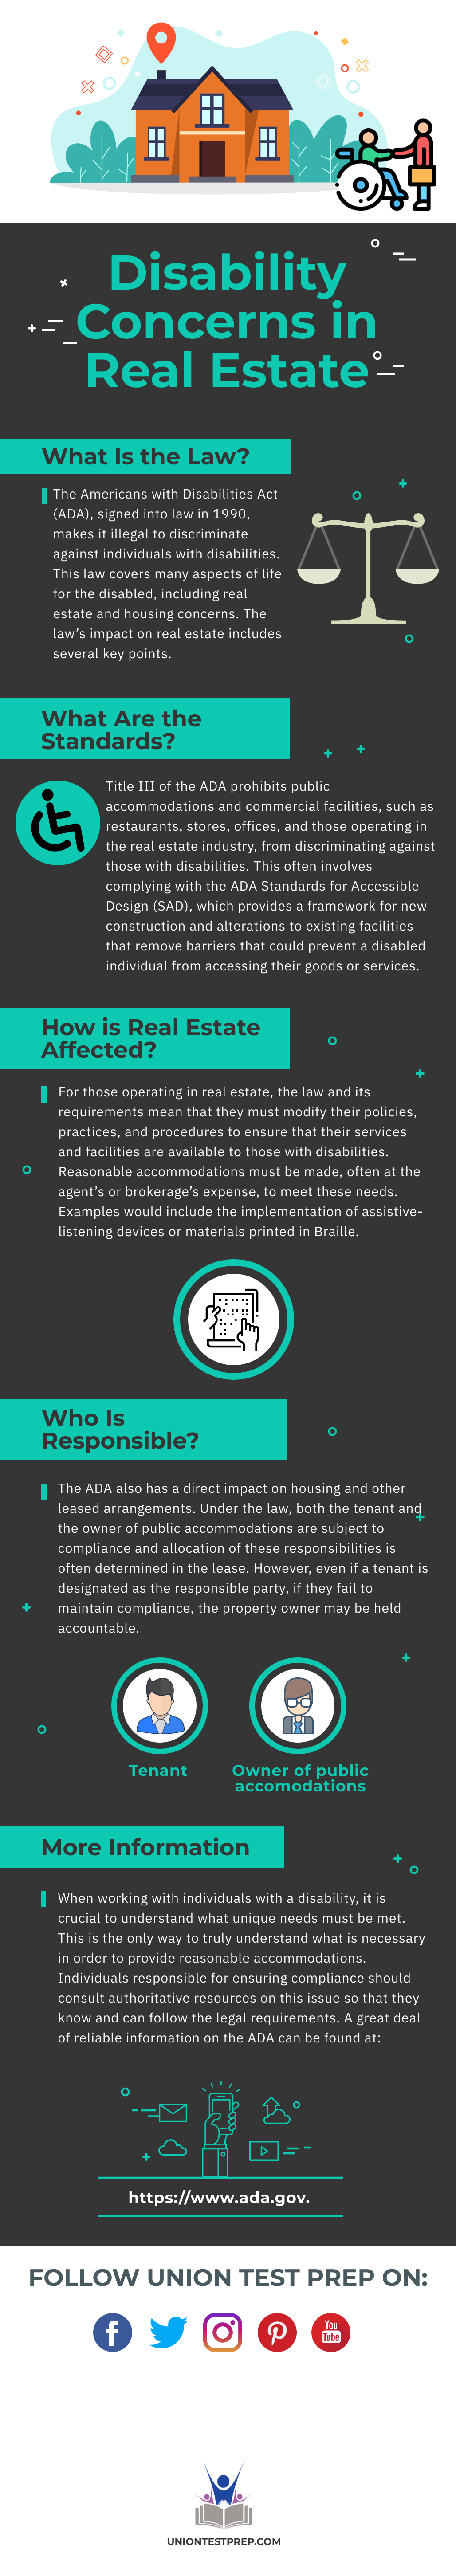 disability concerns real estate